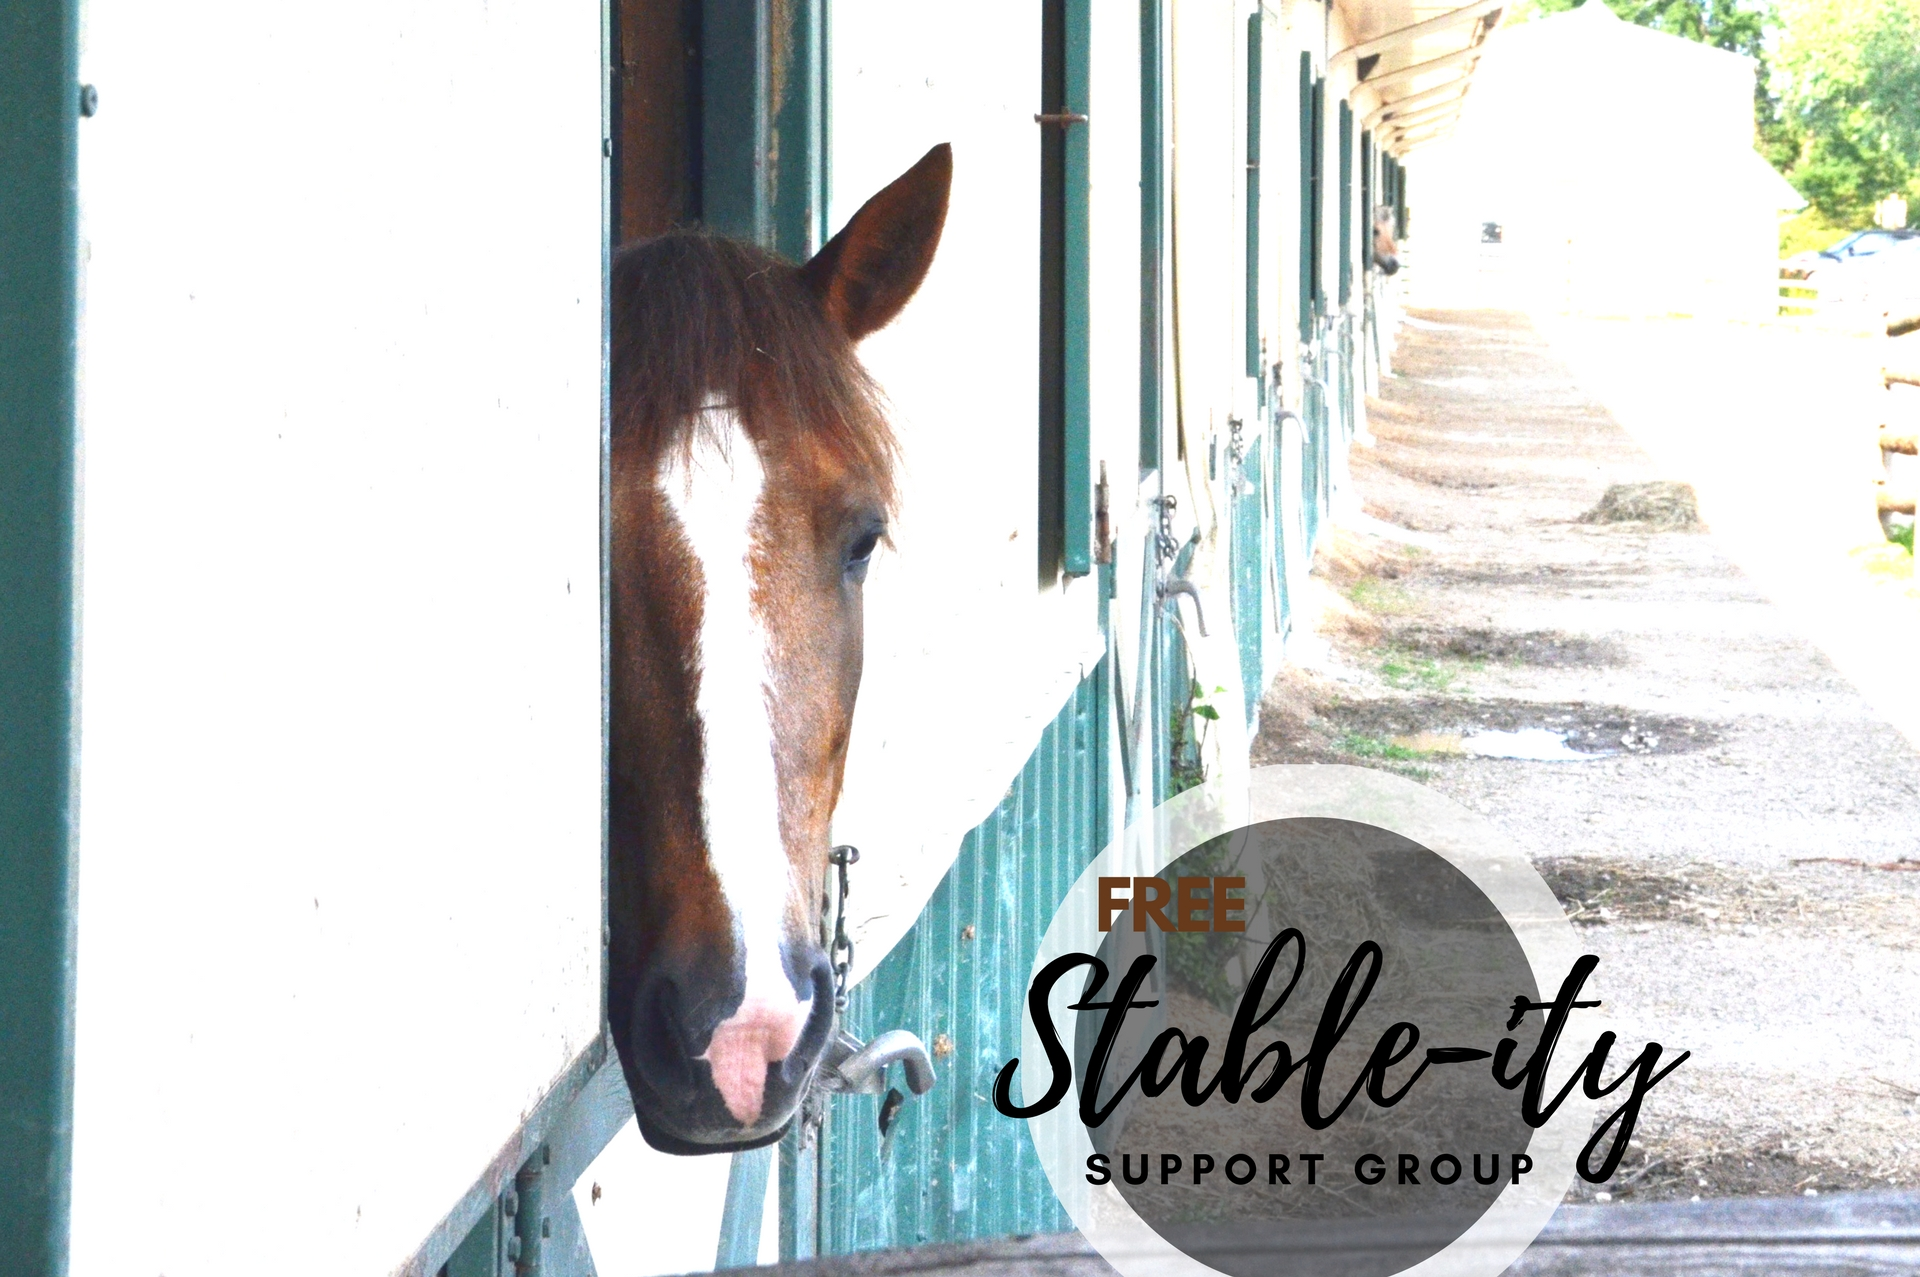 Stable-ity Support Group